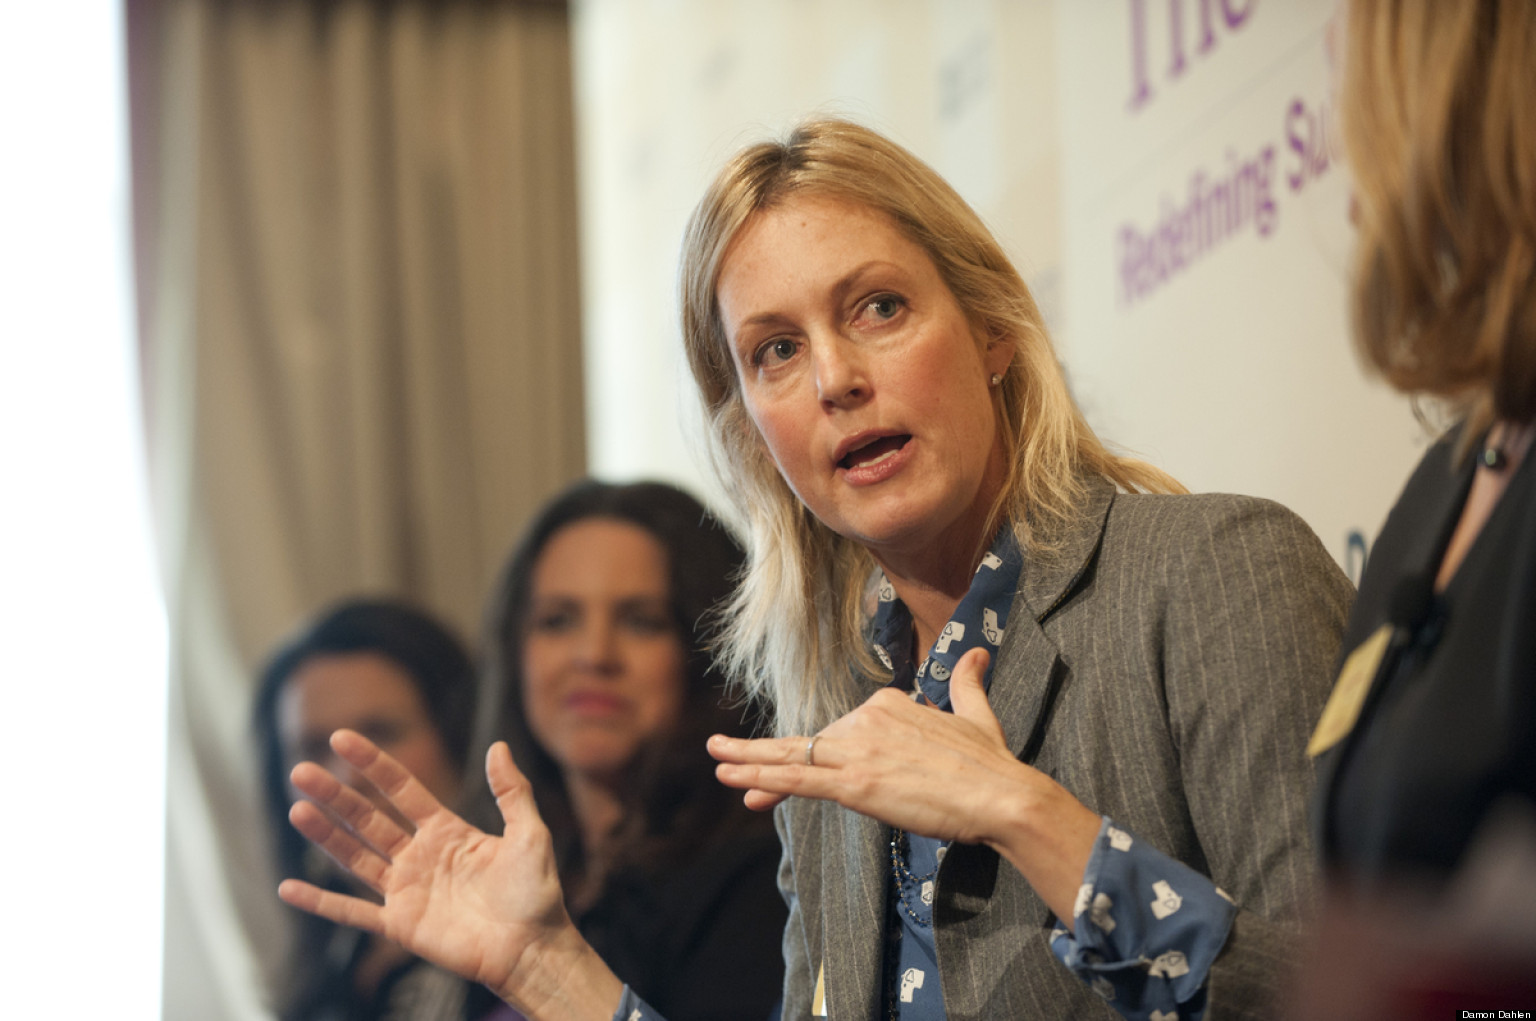 Alexandra Wentworth Ali Wentworth At The Third Metric Conference You Redefine What